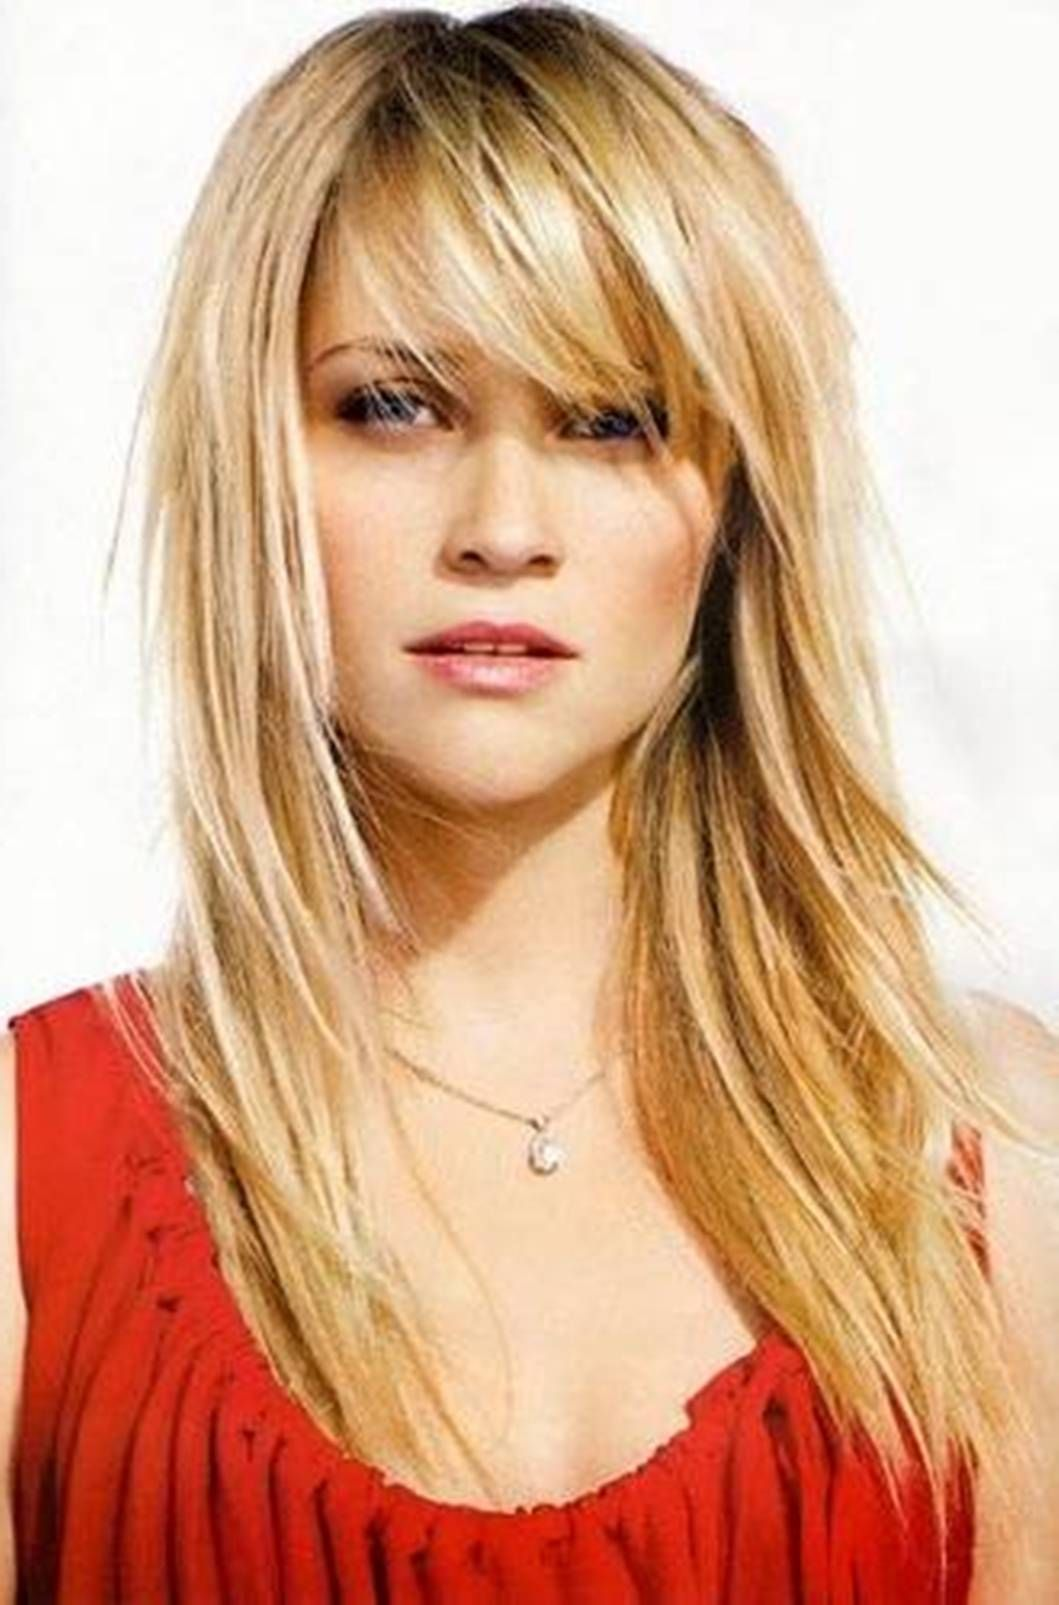 Reese Witherspoon Layered Long Hairut Jpg 1059 1605 Bangs With Medium Hair Hair Styles Easy Hairstyles For Long Hair